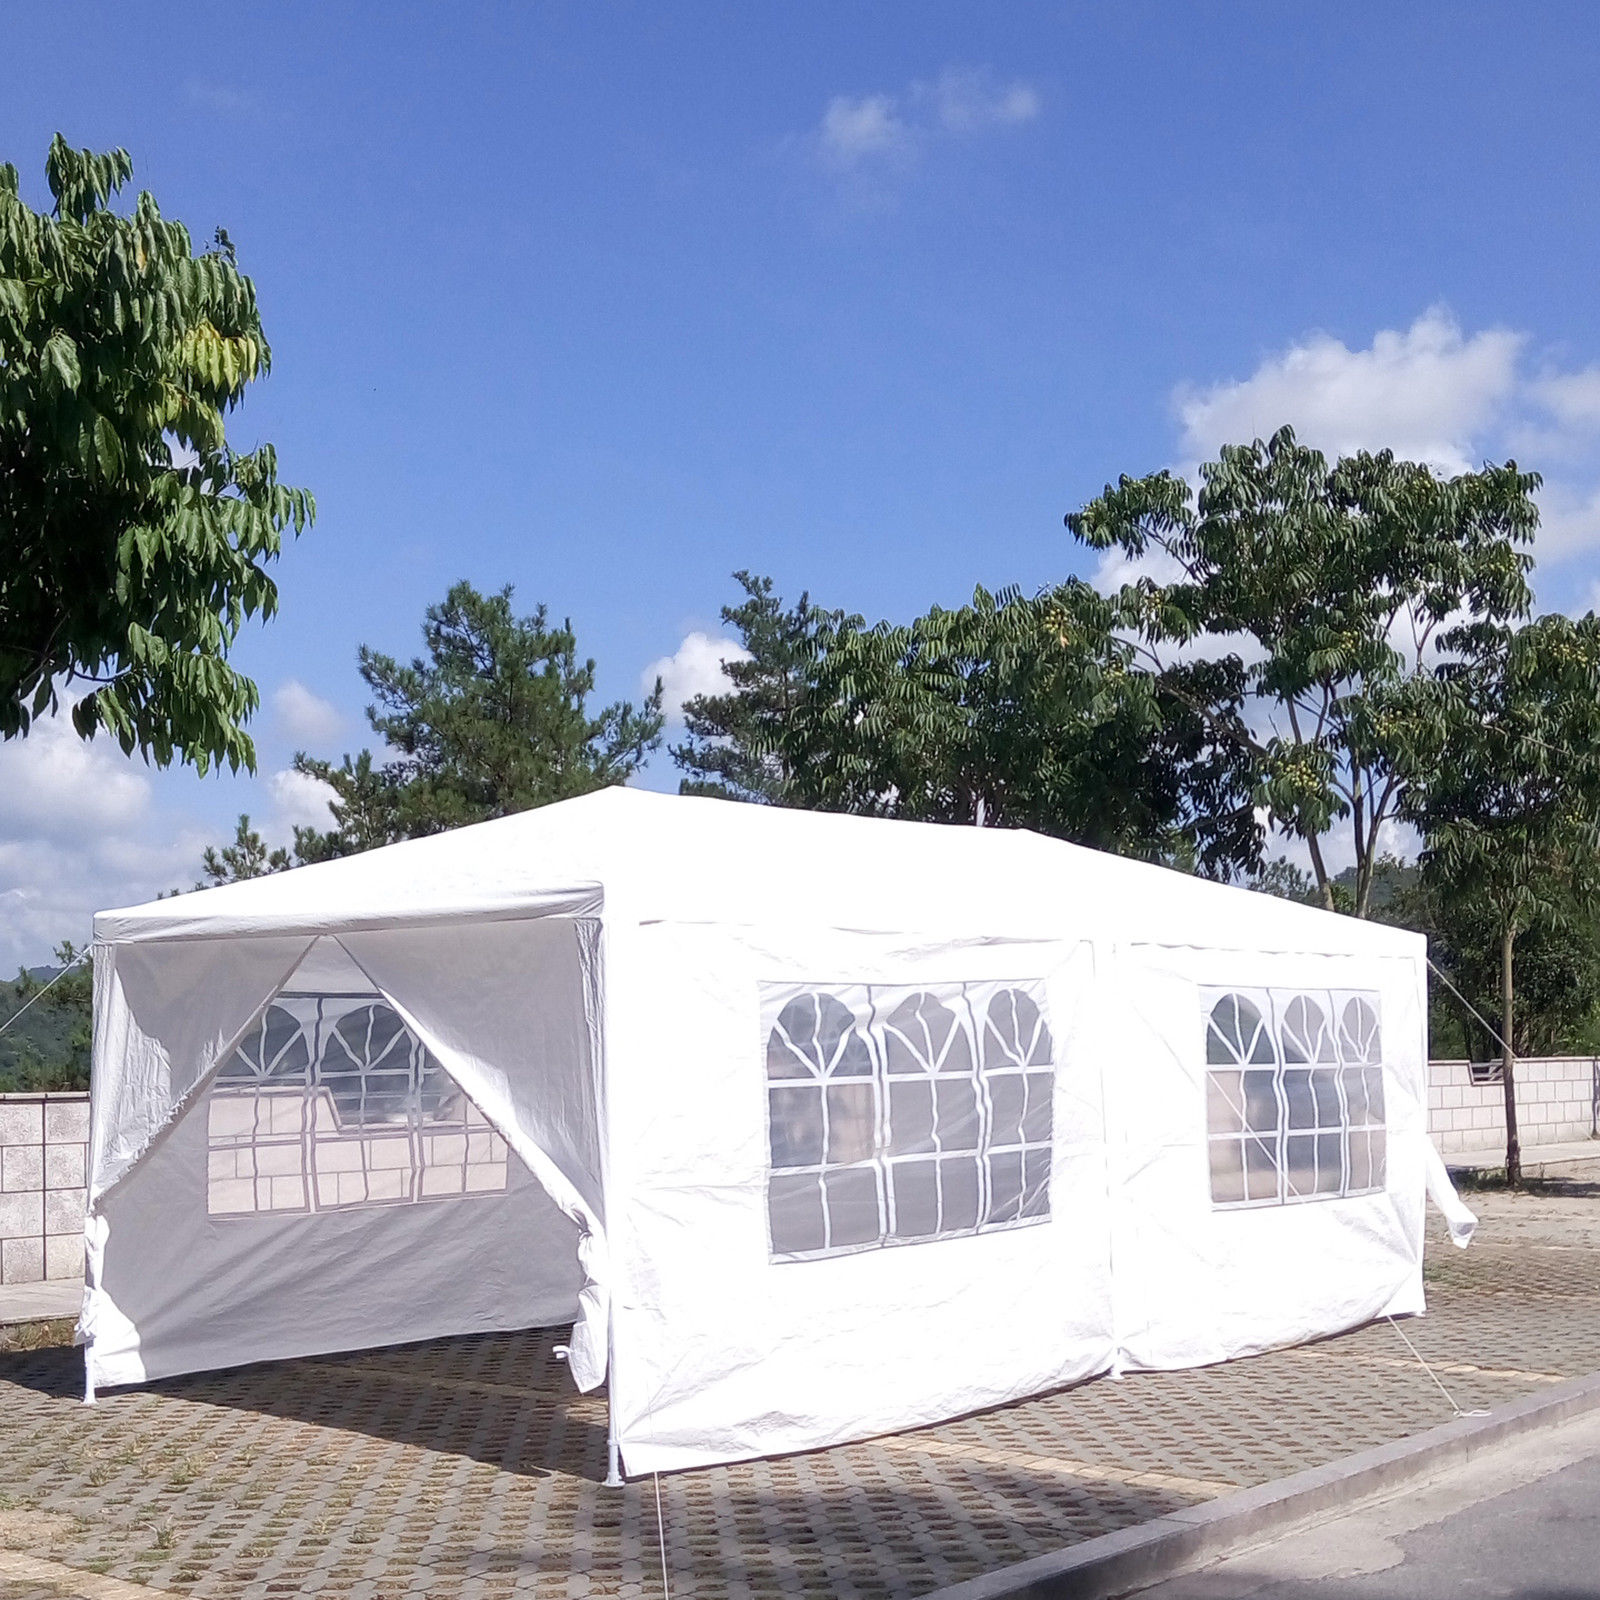 Ktaxon 10' x 20' Party Tent Wedding Canopy Gazebo Wedding Tent Pavilion